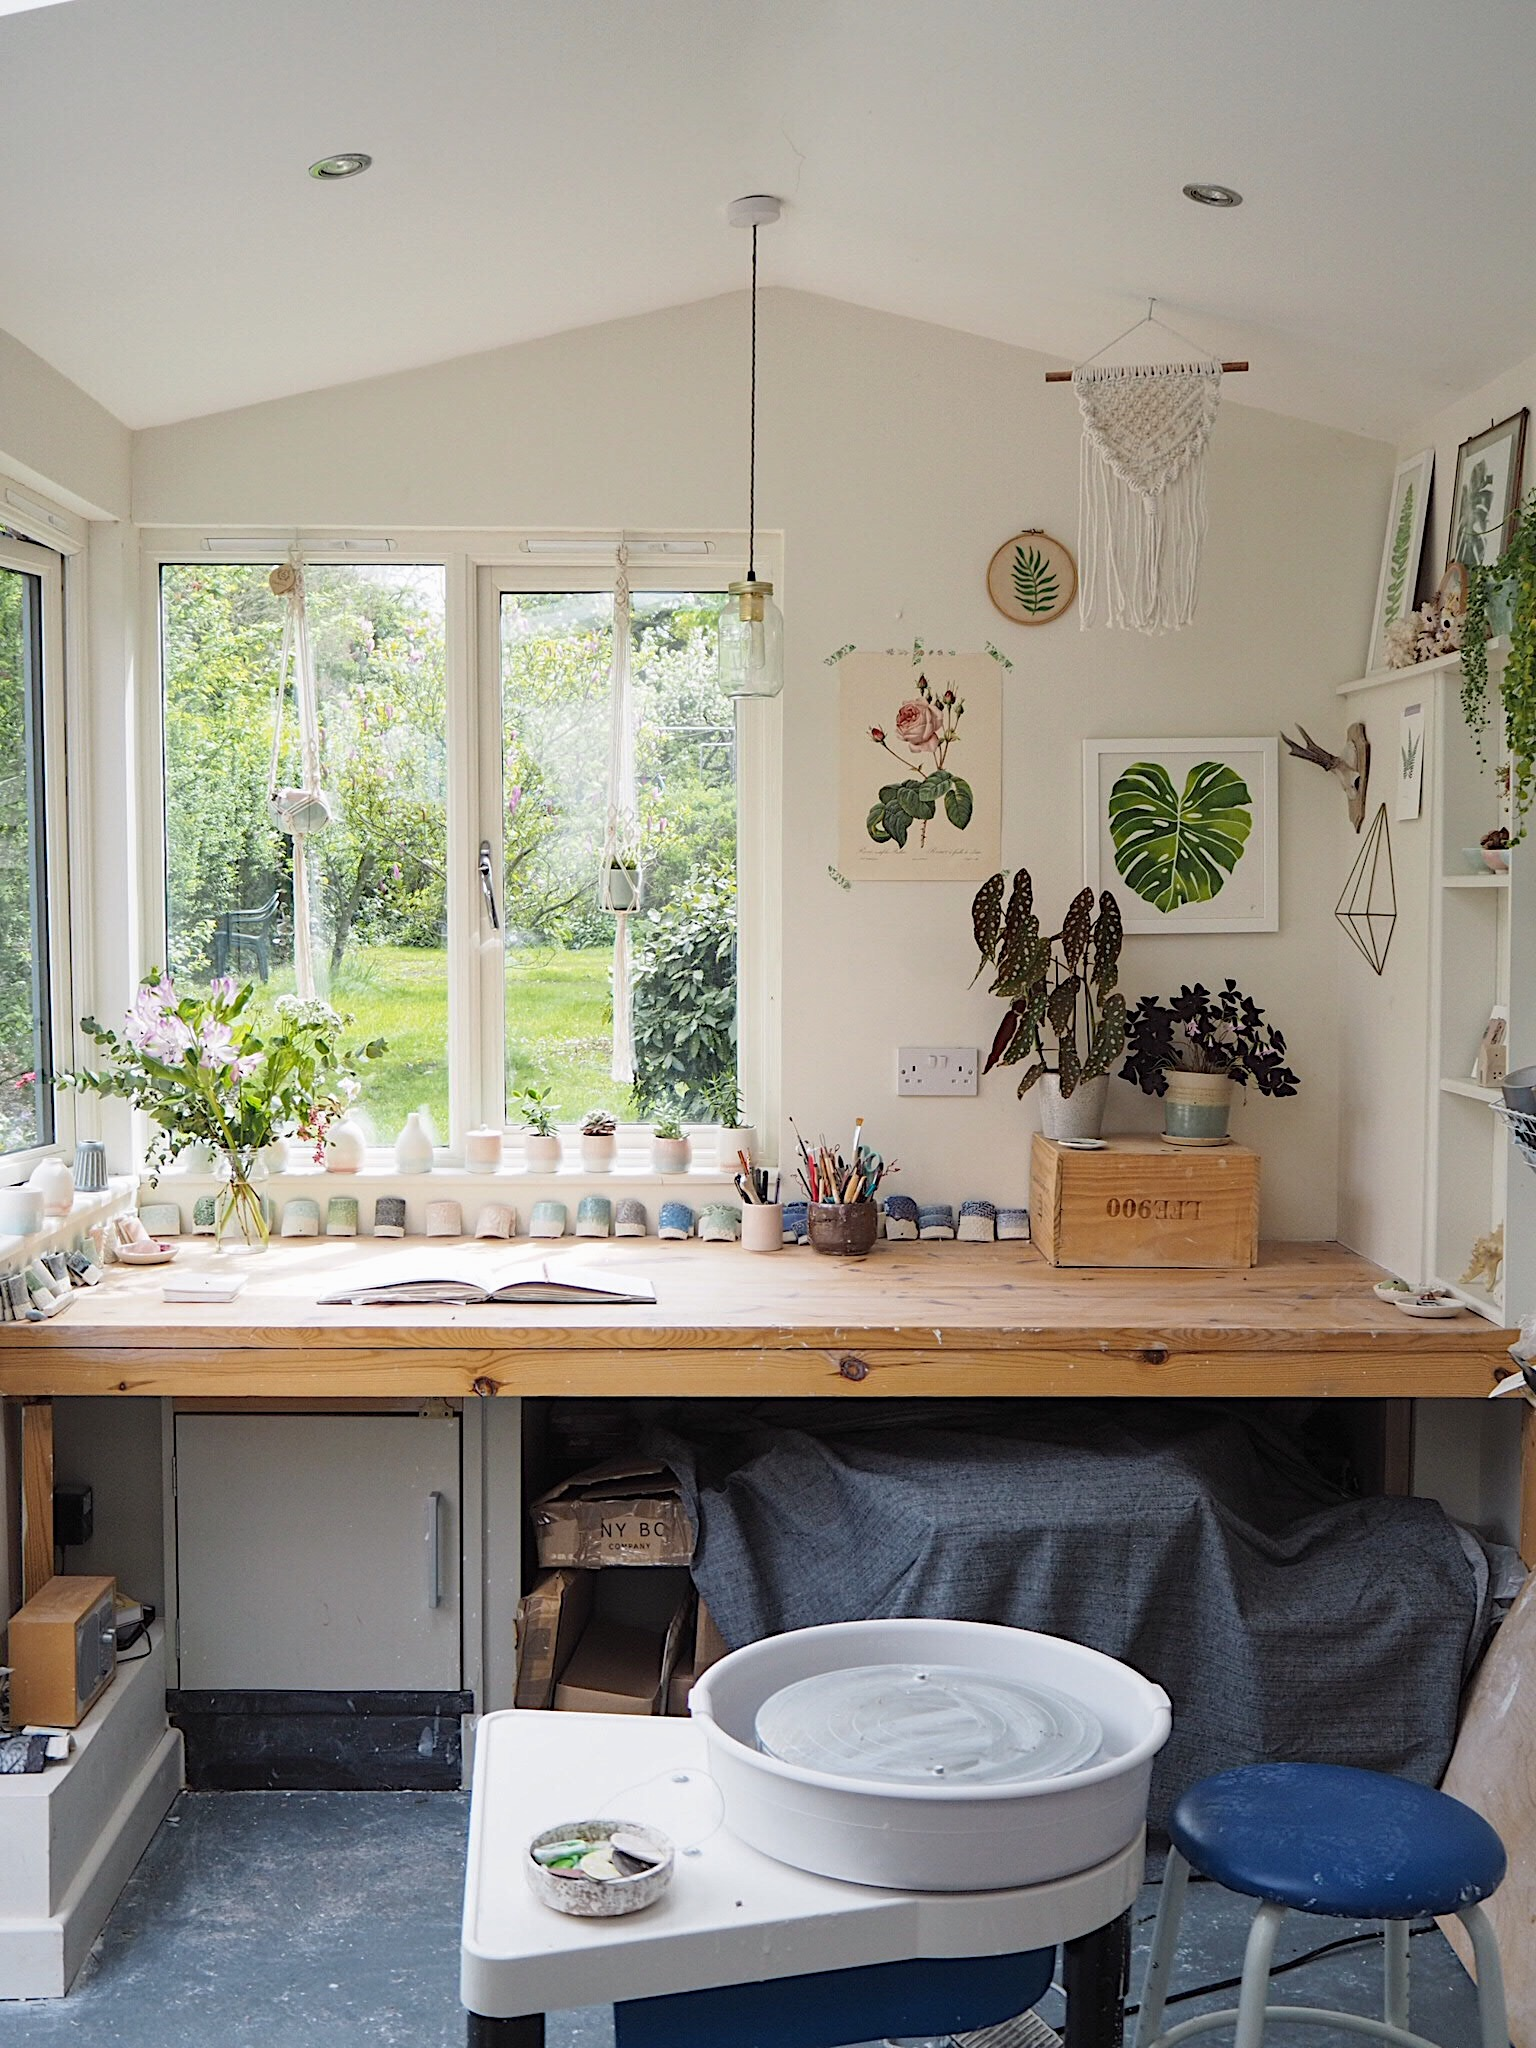 A garden studio filled with plants and flowers for extra inspiration - Kt Robbins Ceramics